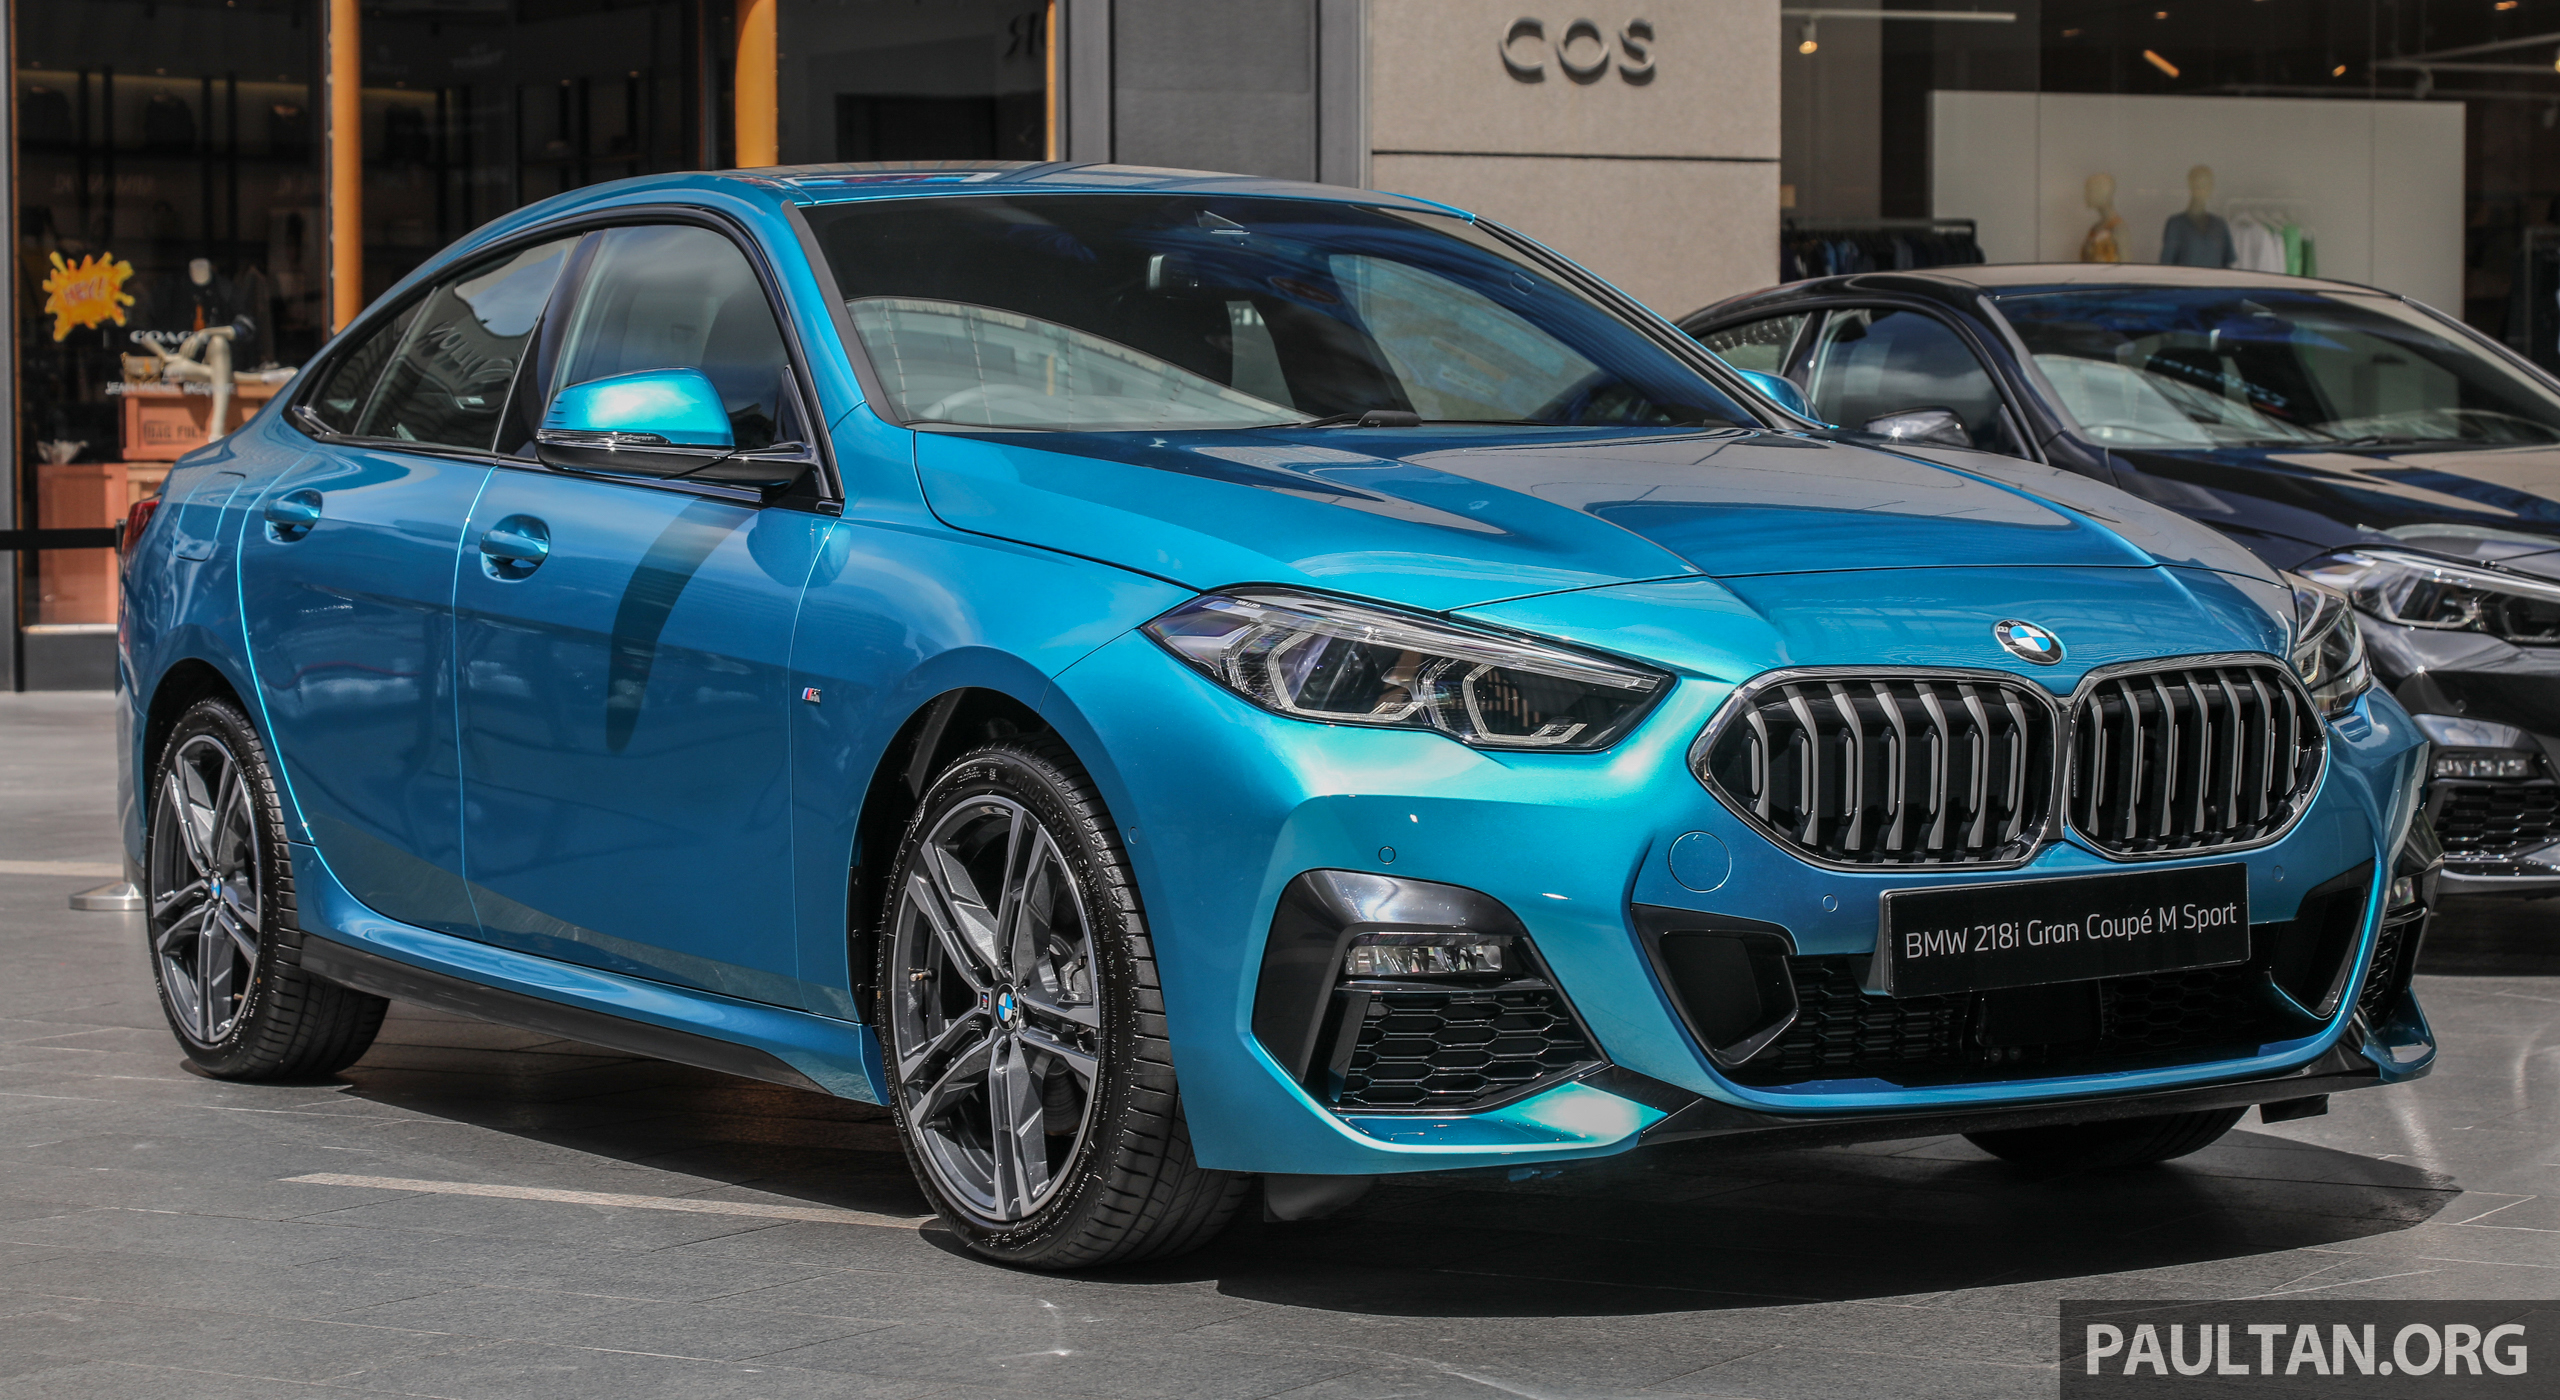 F44 Bmw 2 Series Gran Coupe Launched In Malaysia Ckd 218i M Sport With 140 Ps 220 Nm Rm211 367 Paultan Org